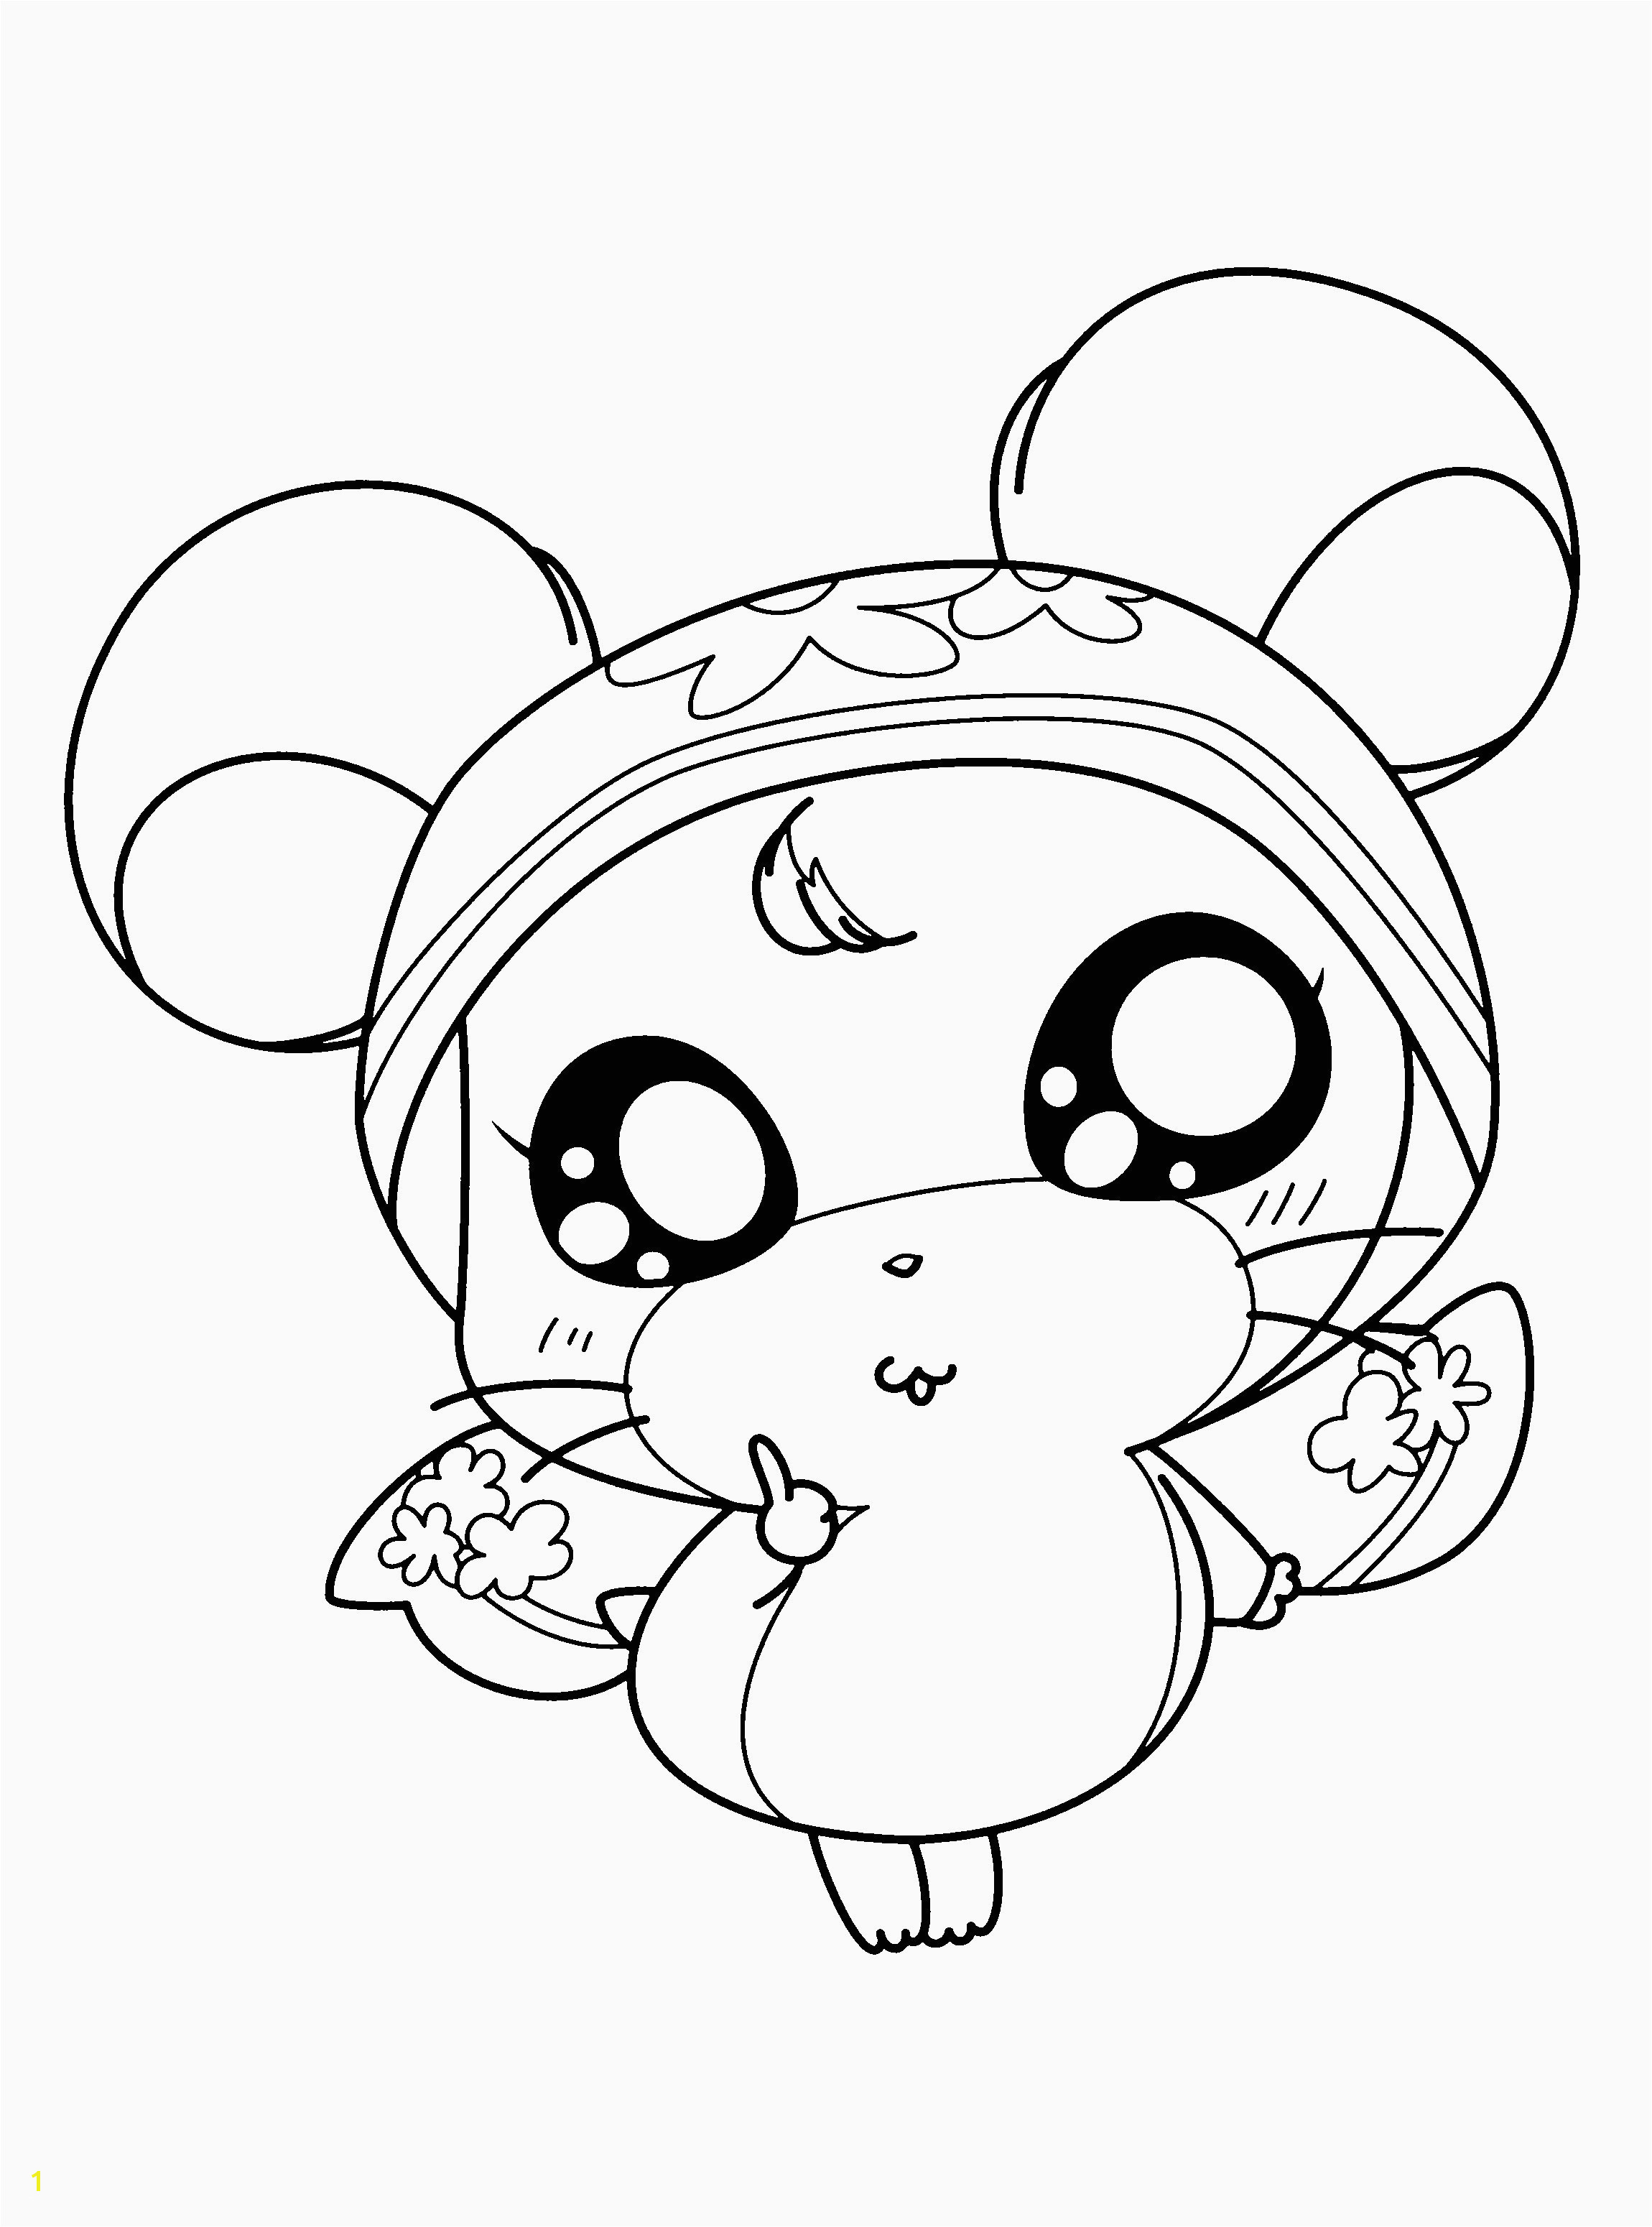 chimchar pokemon coloring pages Puppy Coloring Page Printable Coloring Pages For Kids Elegant Coloring Printables